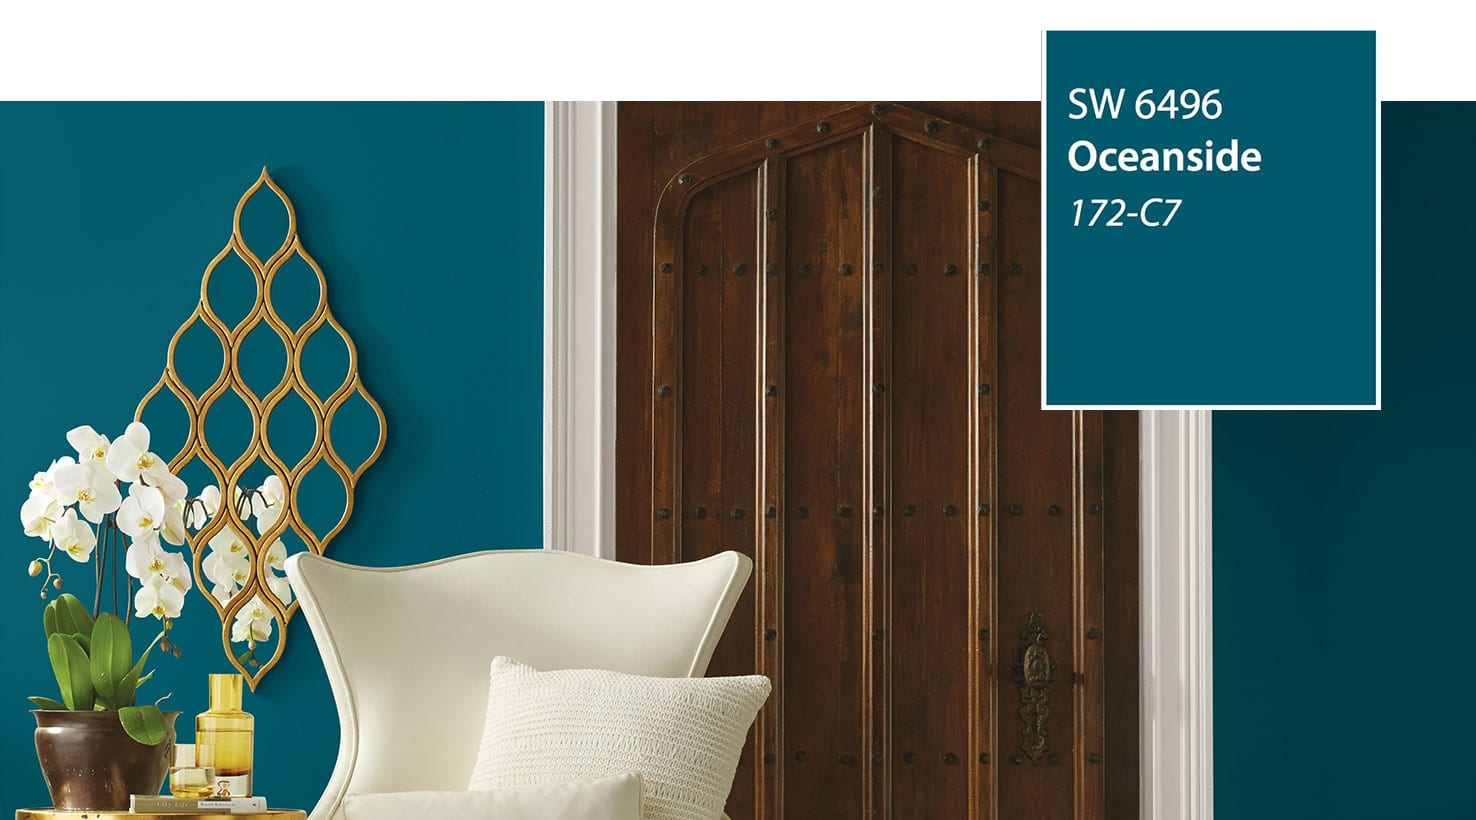 Sherwin williams 2018 color of the year oceanside for Sherwin williams color of the month october 2017